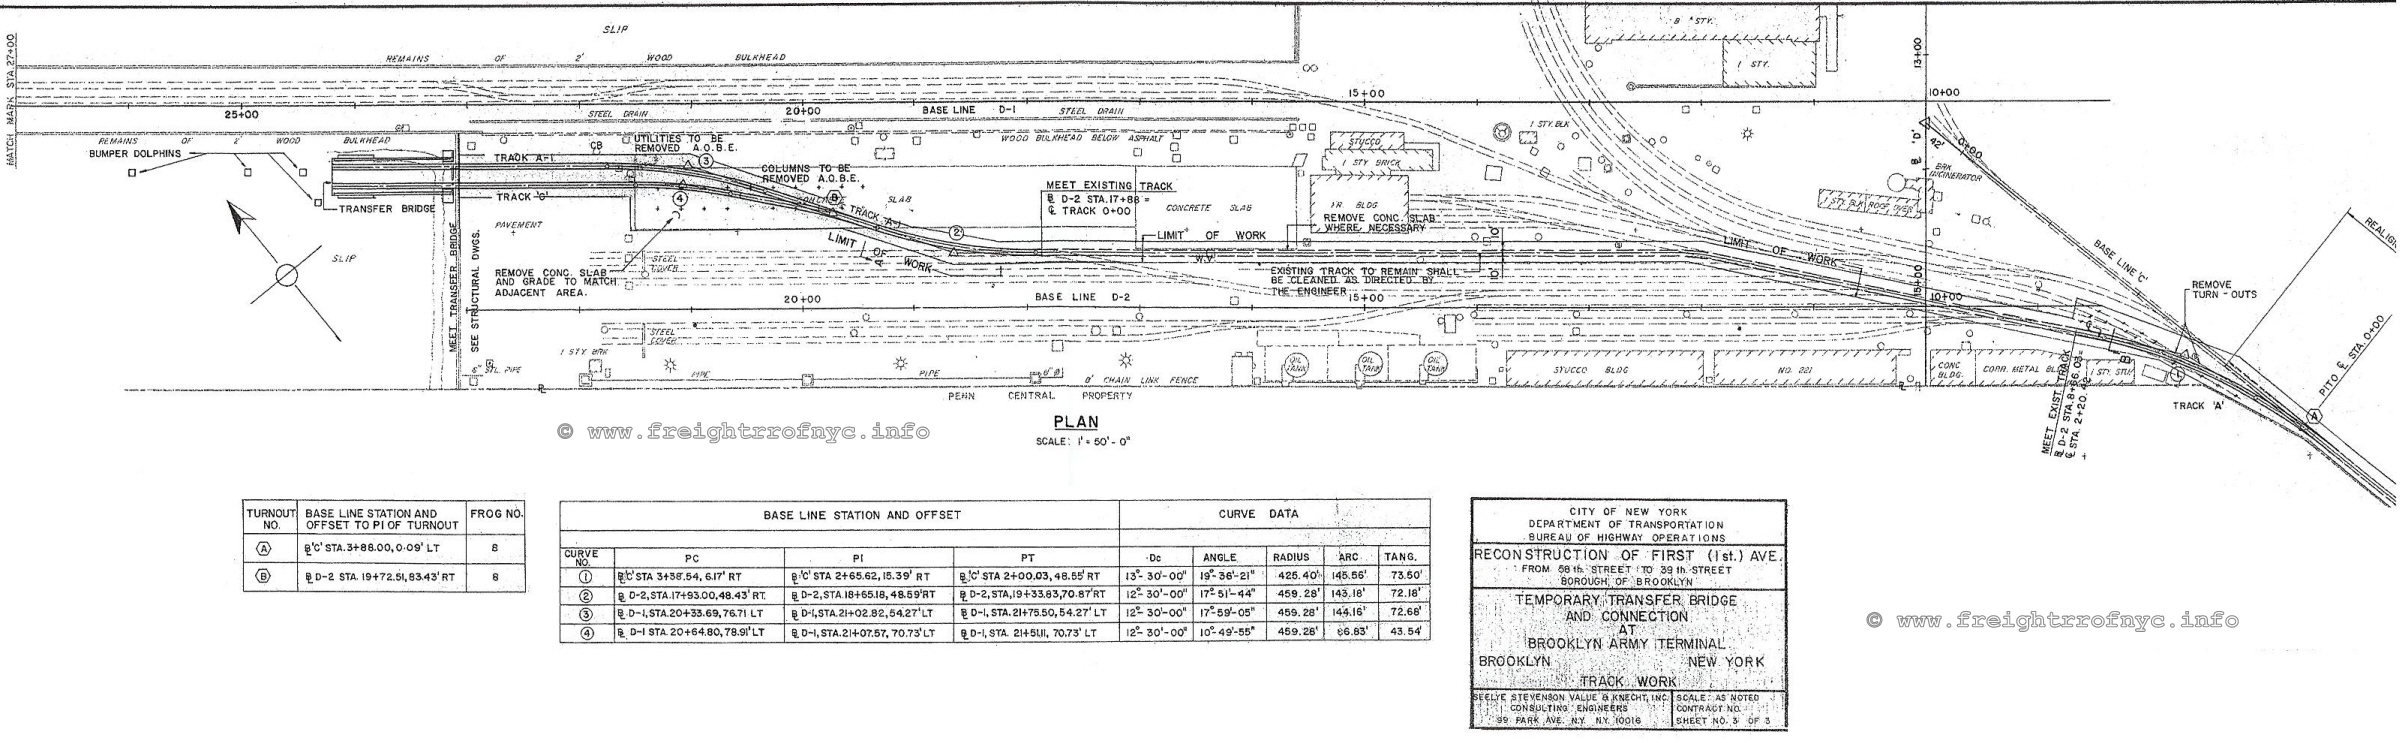 New York Dock Johnson Outboard Wiring Diagram For 1956 City Of Department Transportation Bureau Highway Operations Reconstruction First Avenue From 58th Street To 39th Borough